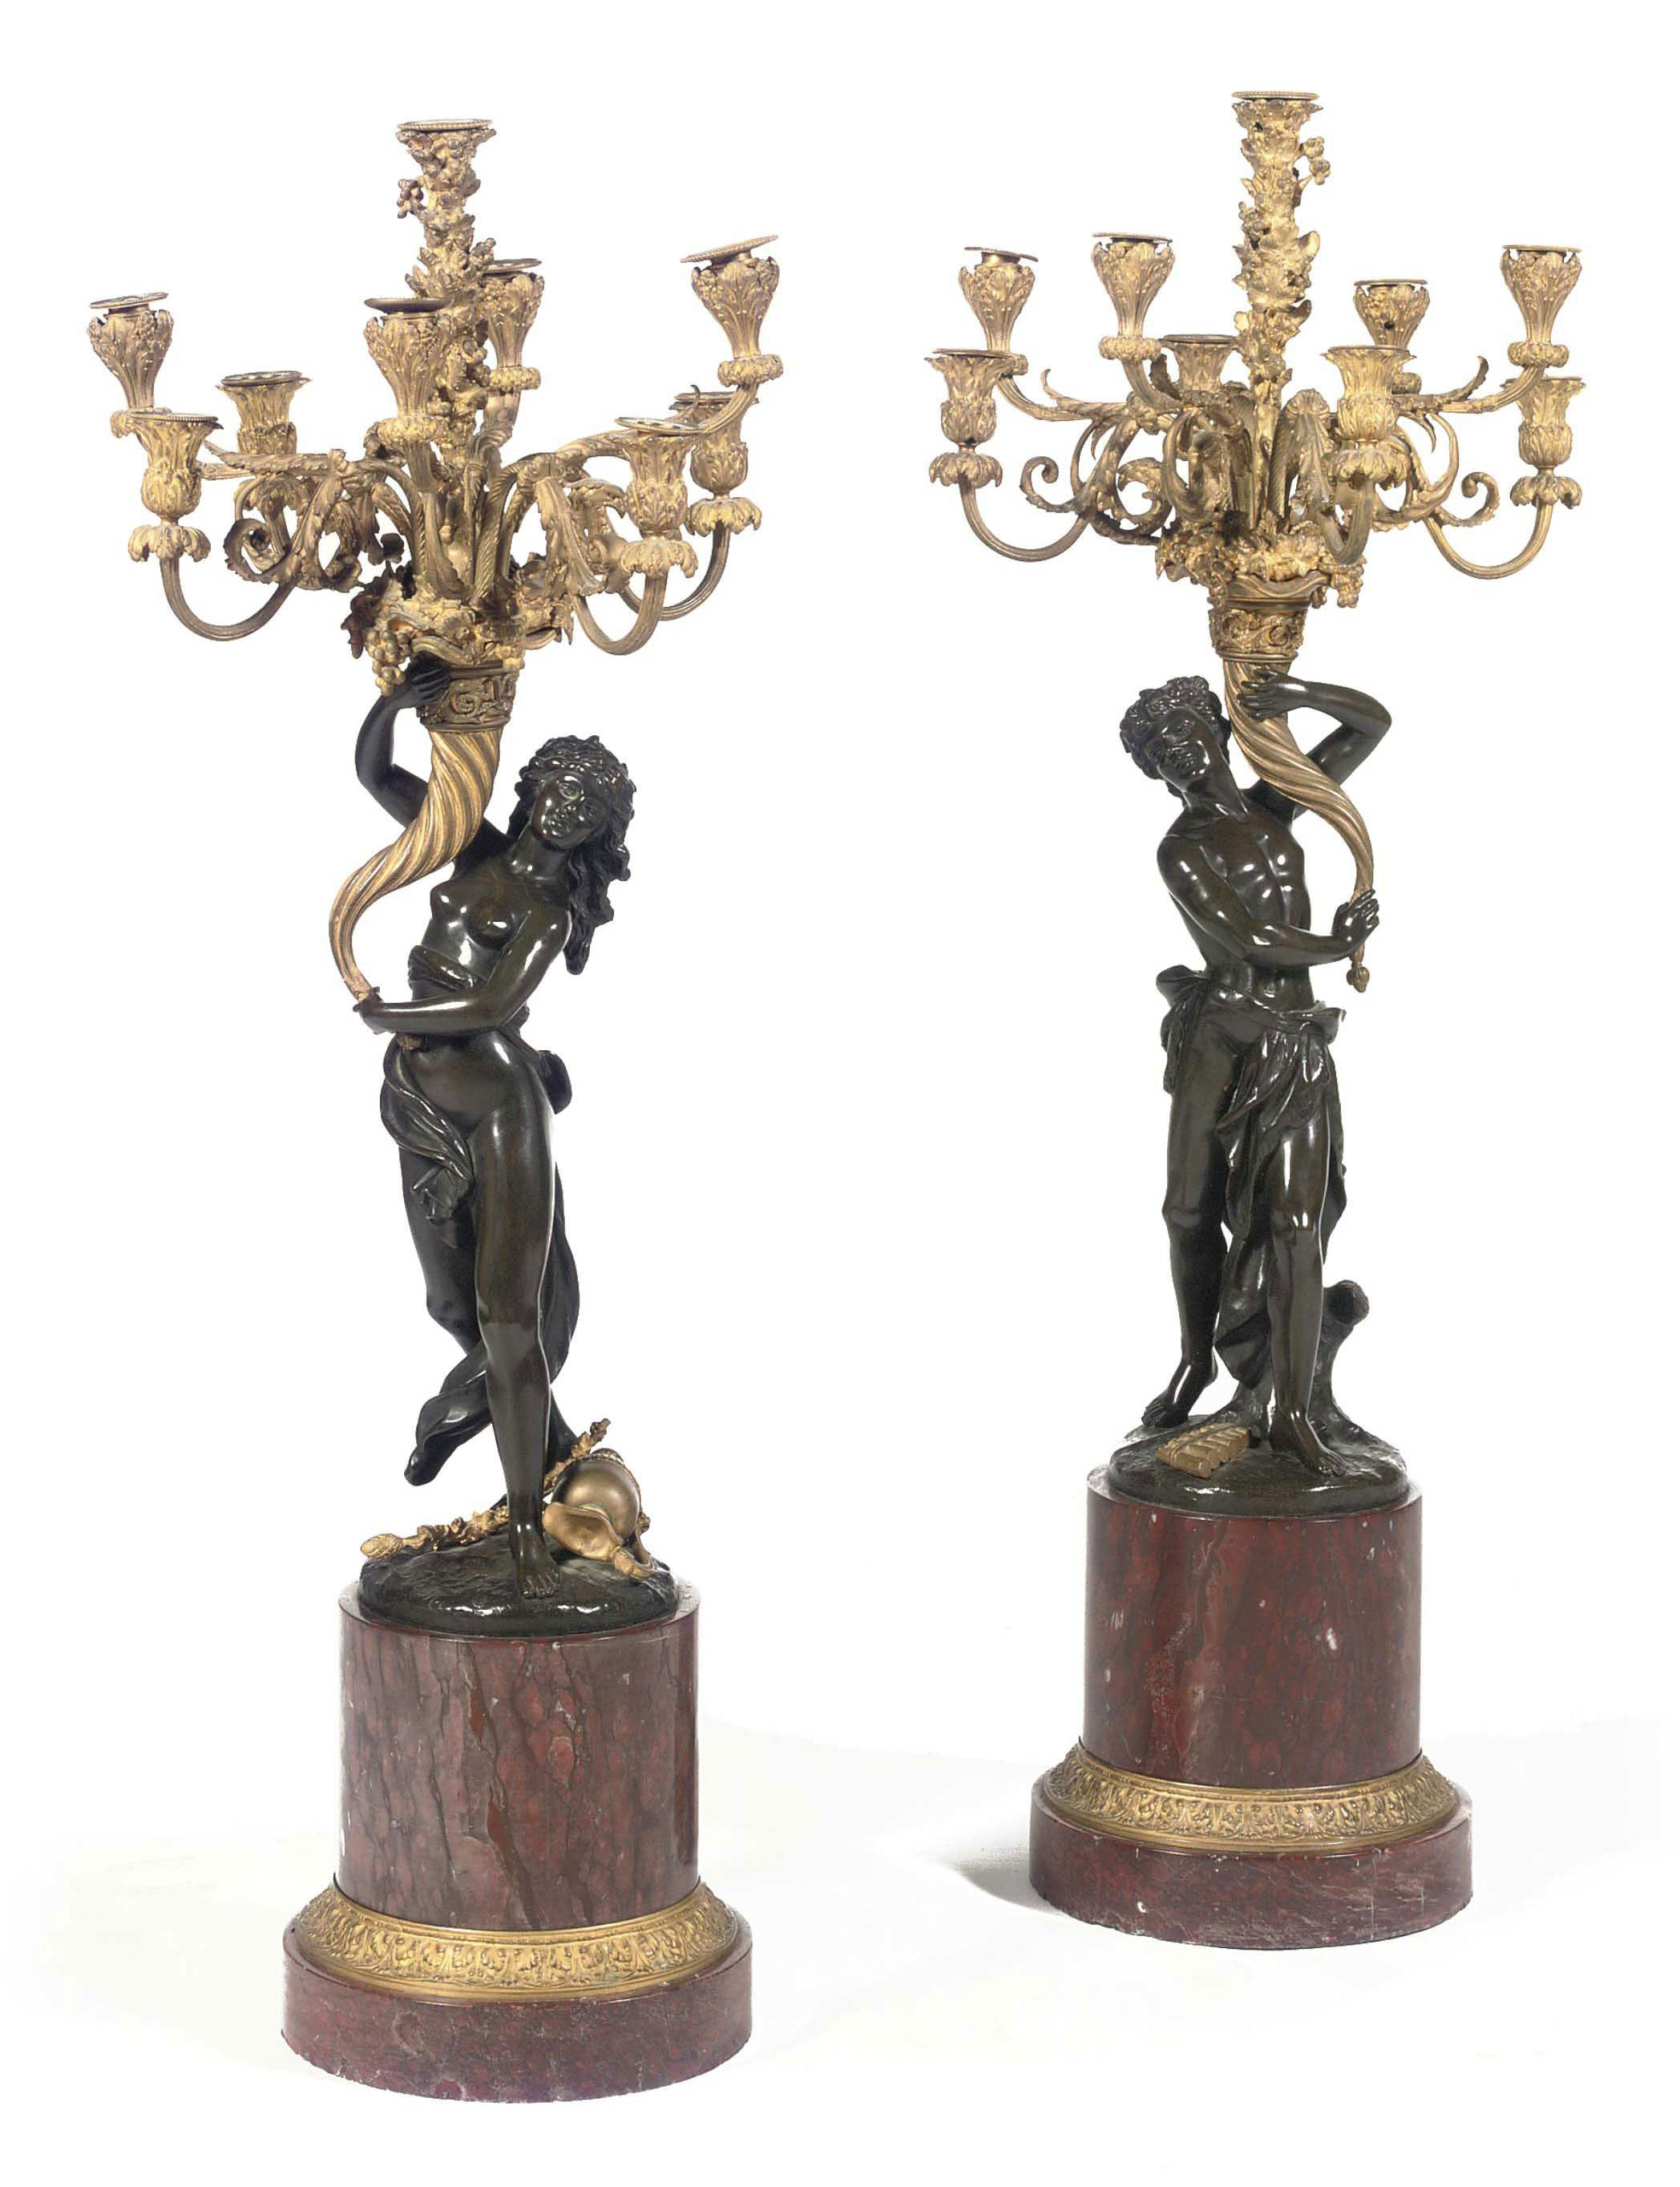 A PAIR OF FRENCH ORMOLU AND PATINATED BRONZE NINE-LIGHT FIGURAL CANDELABRA